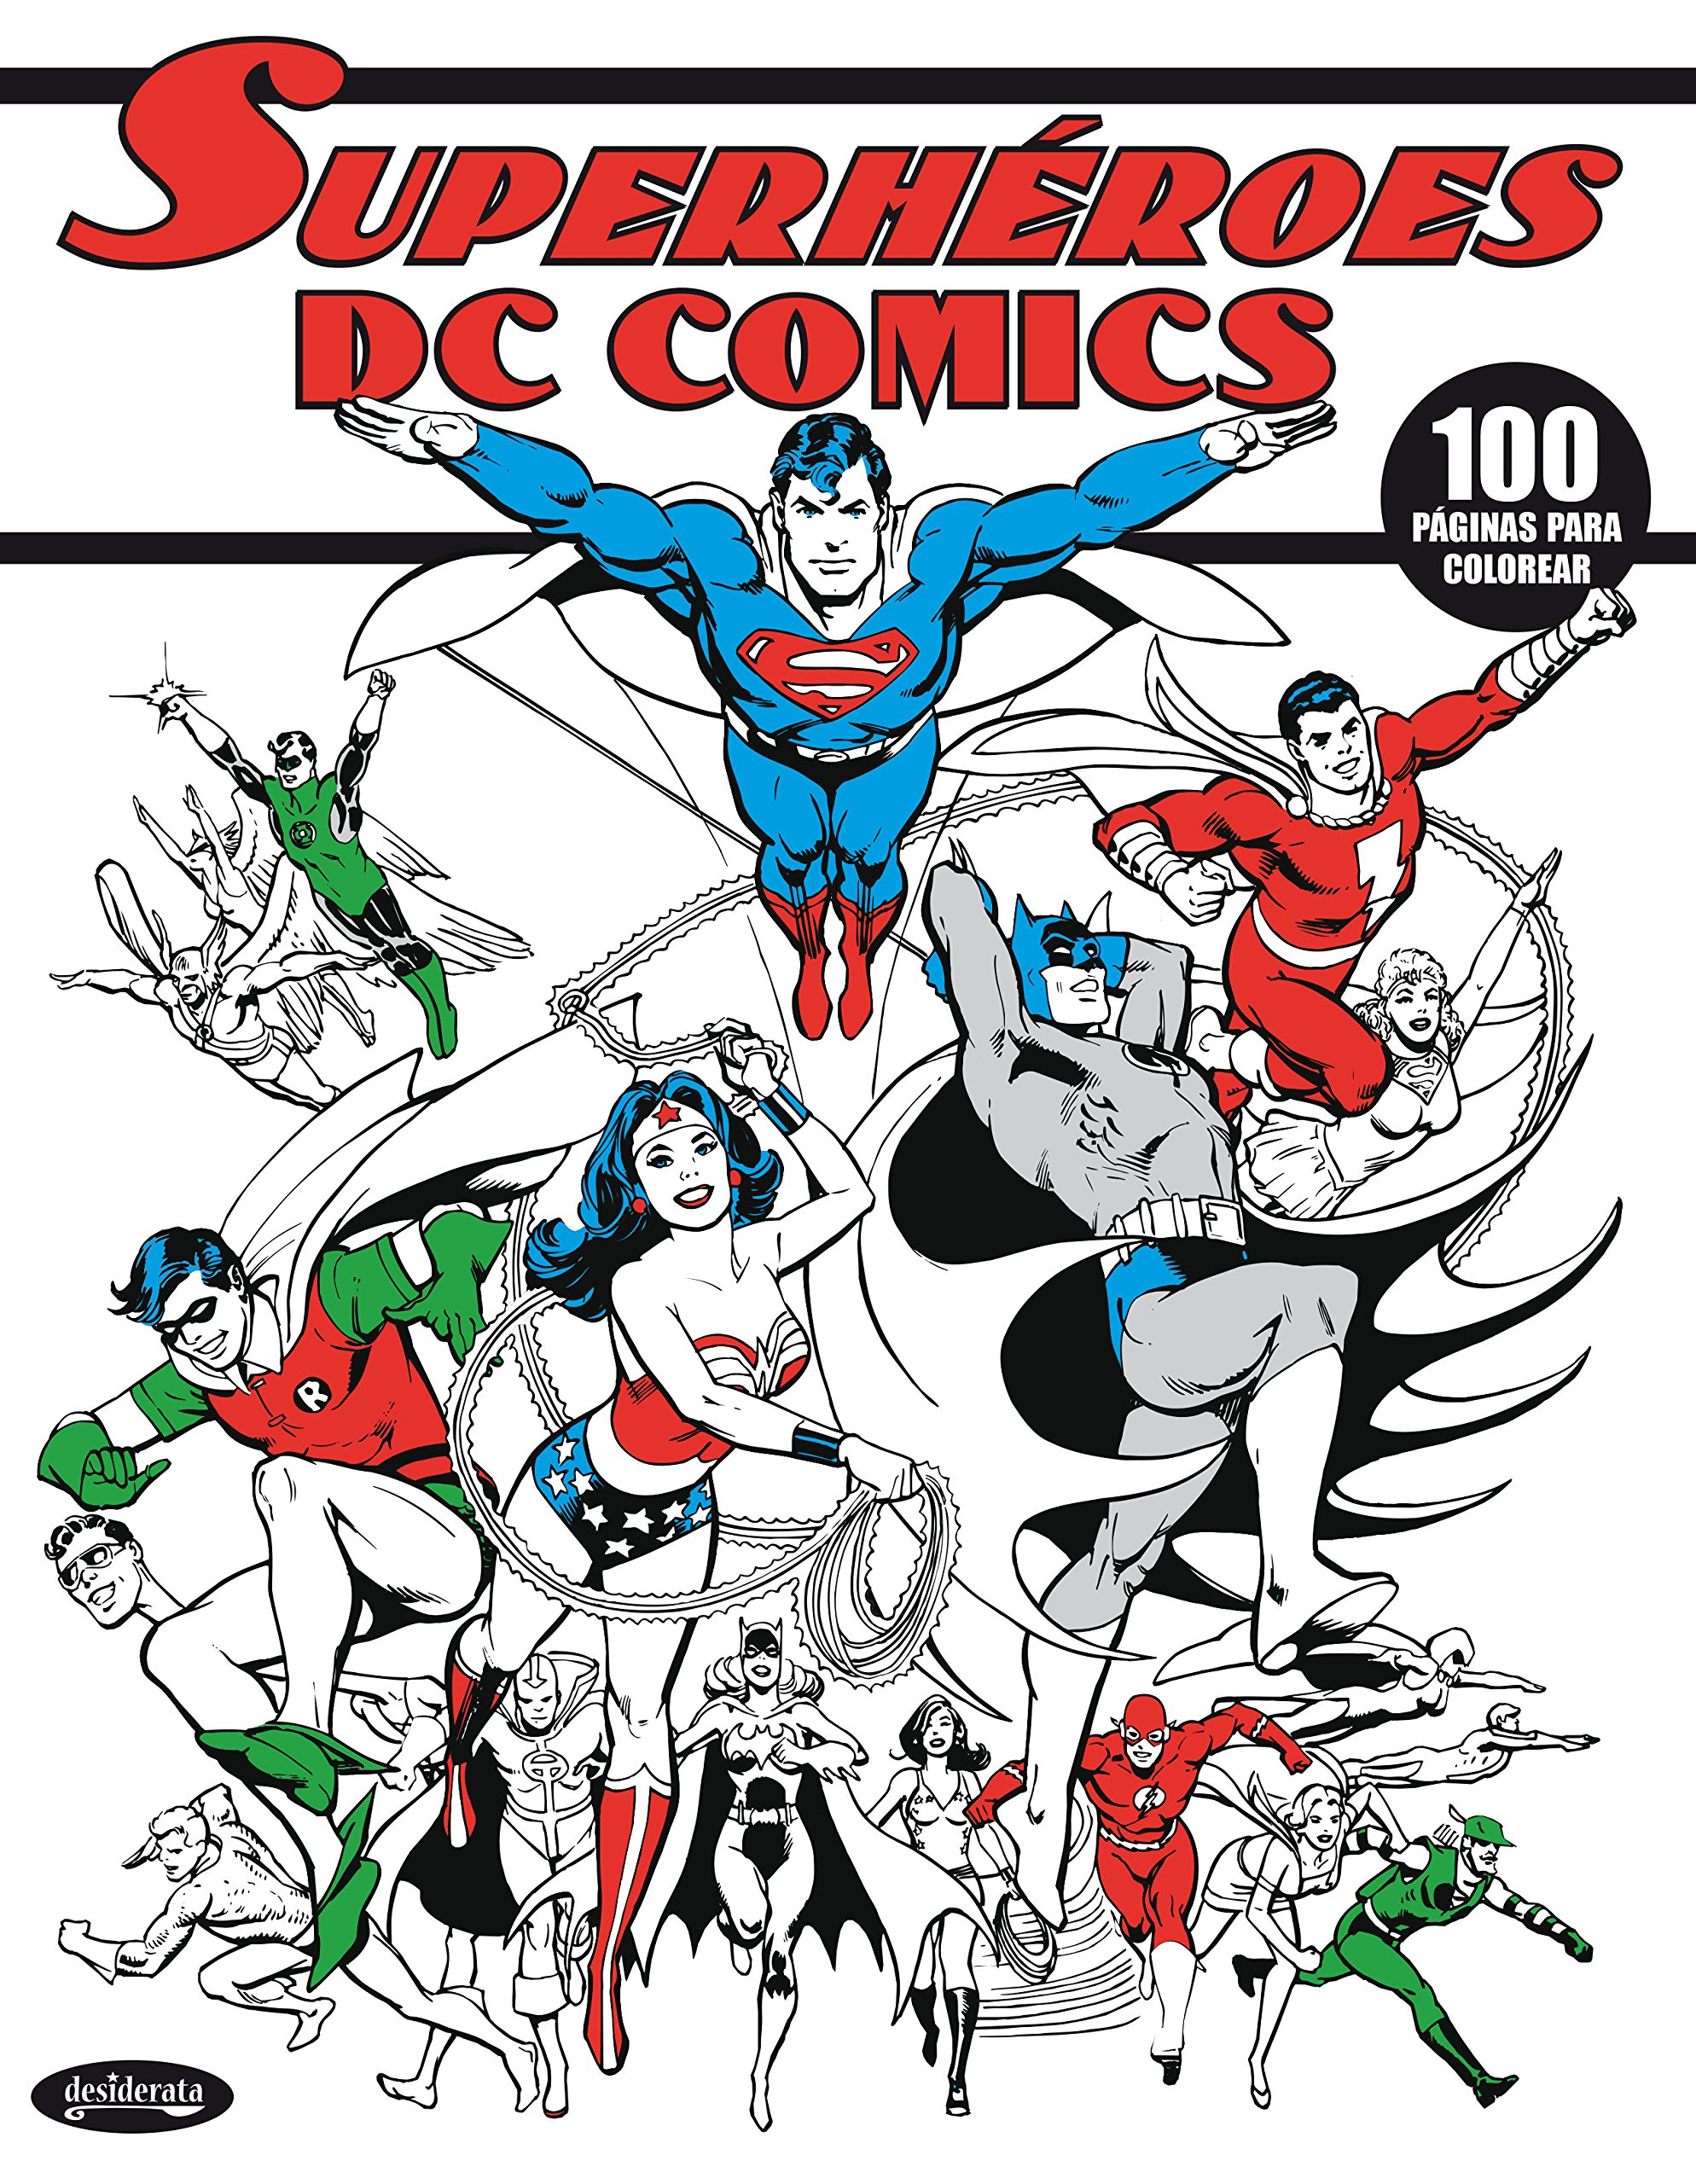 DC COMICS SUPERHÉROES: LIBRO PARA COLOREAR: Amazon.es: VV.AA.: Libros